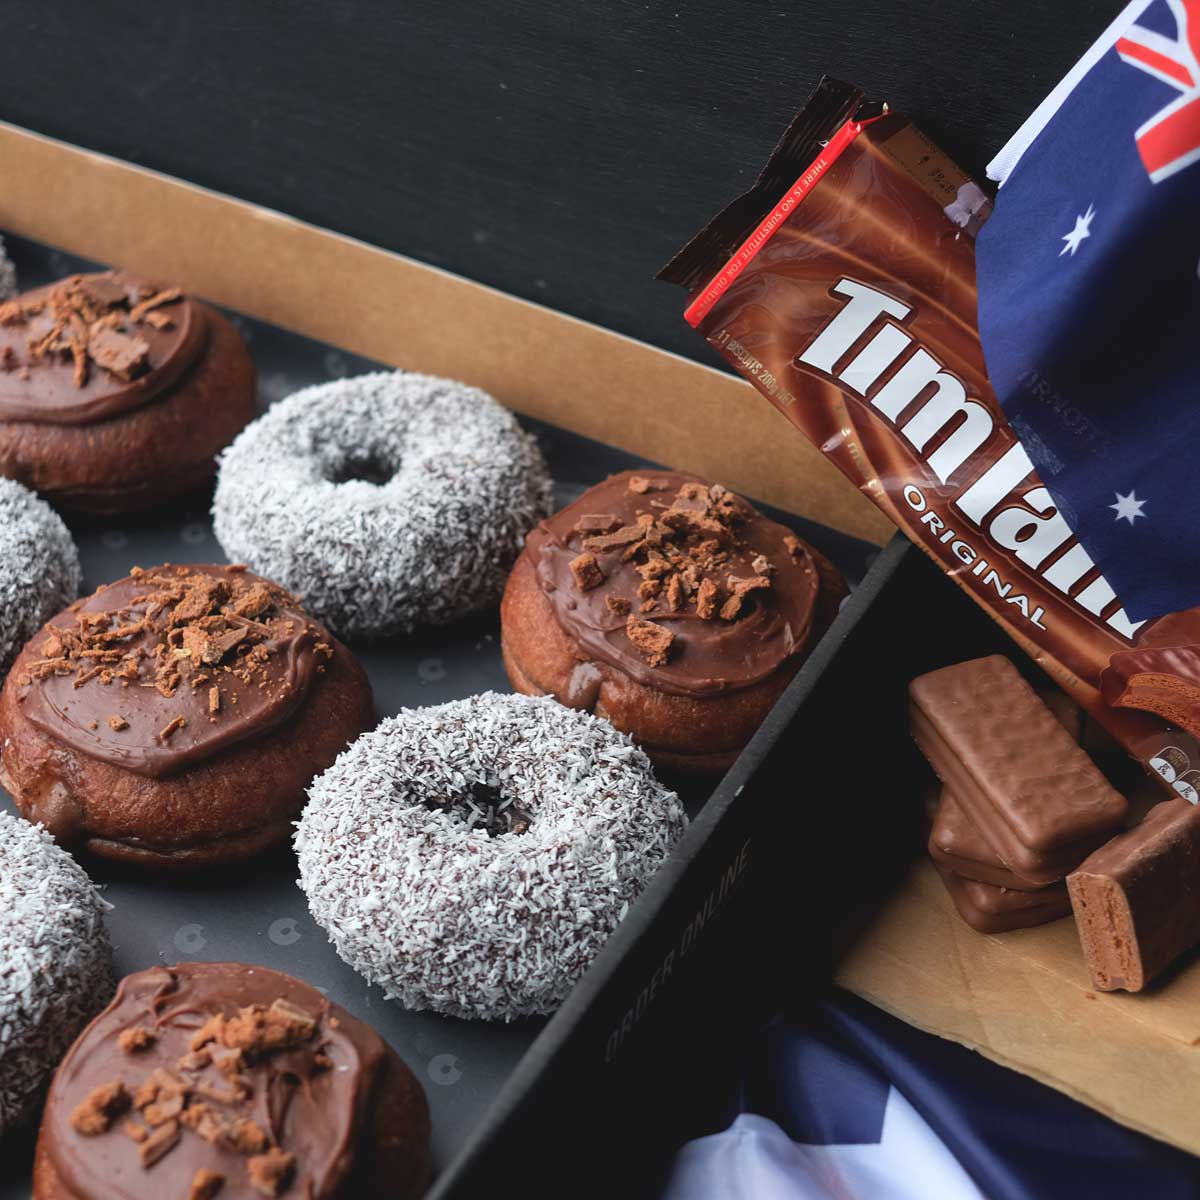 Australia Day Box Tim Tam Lamington